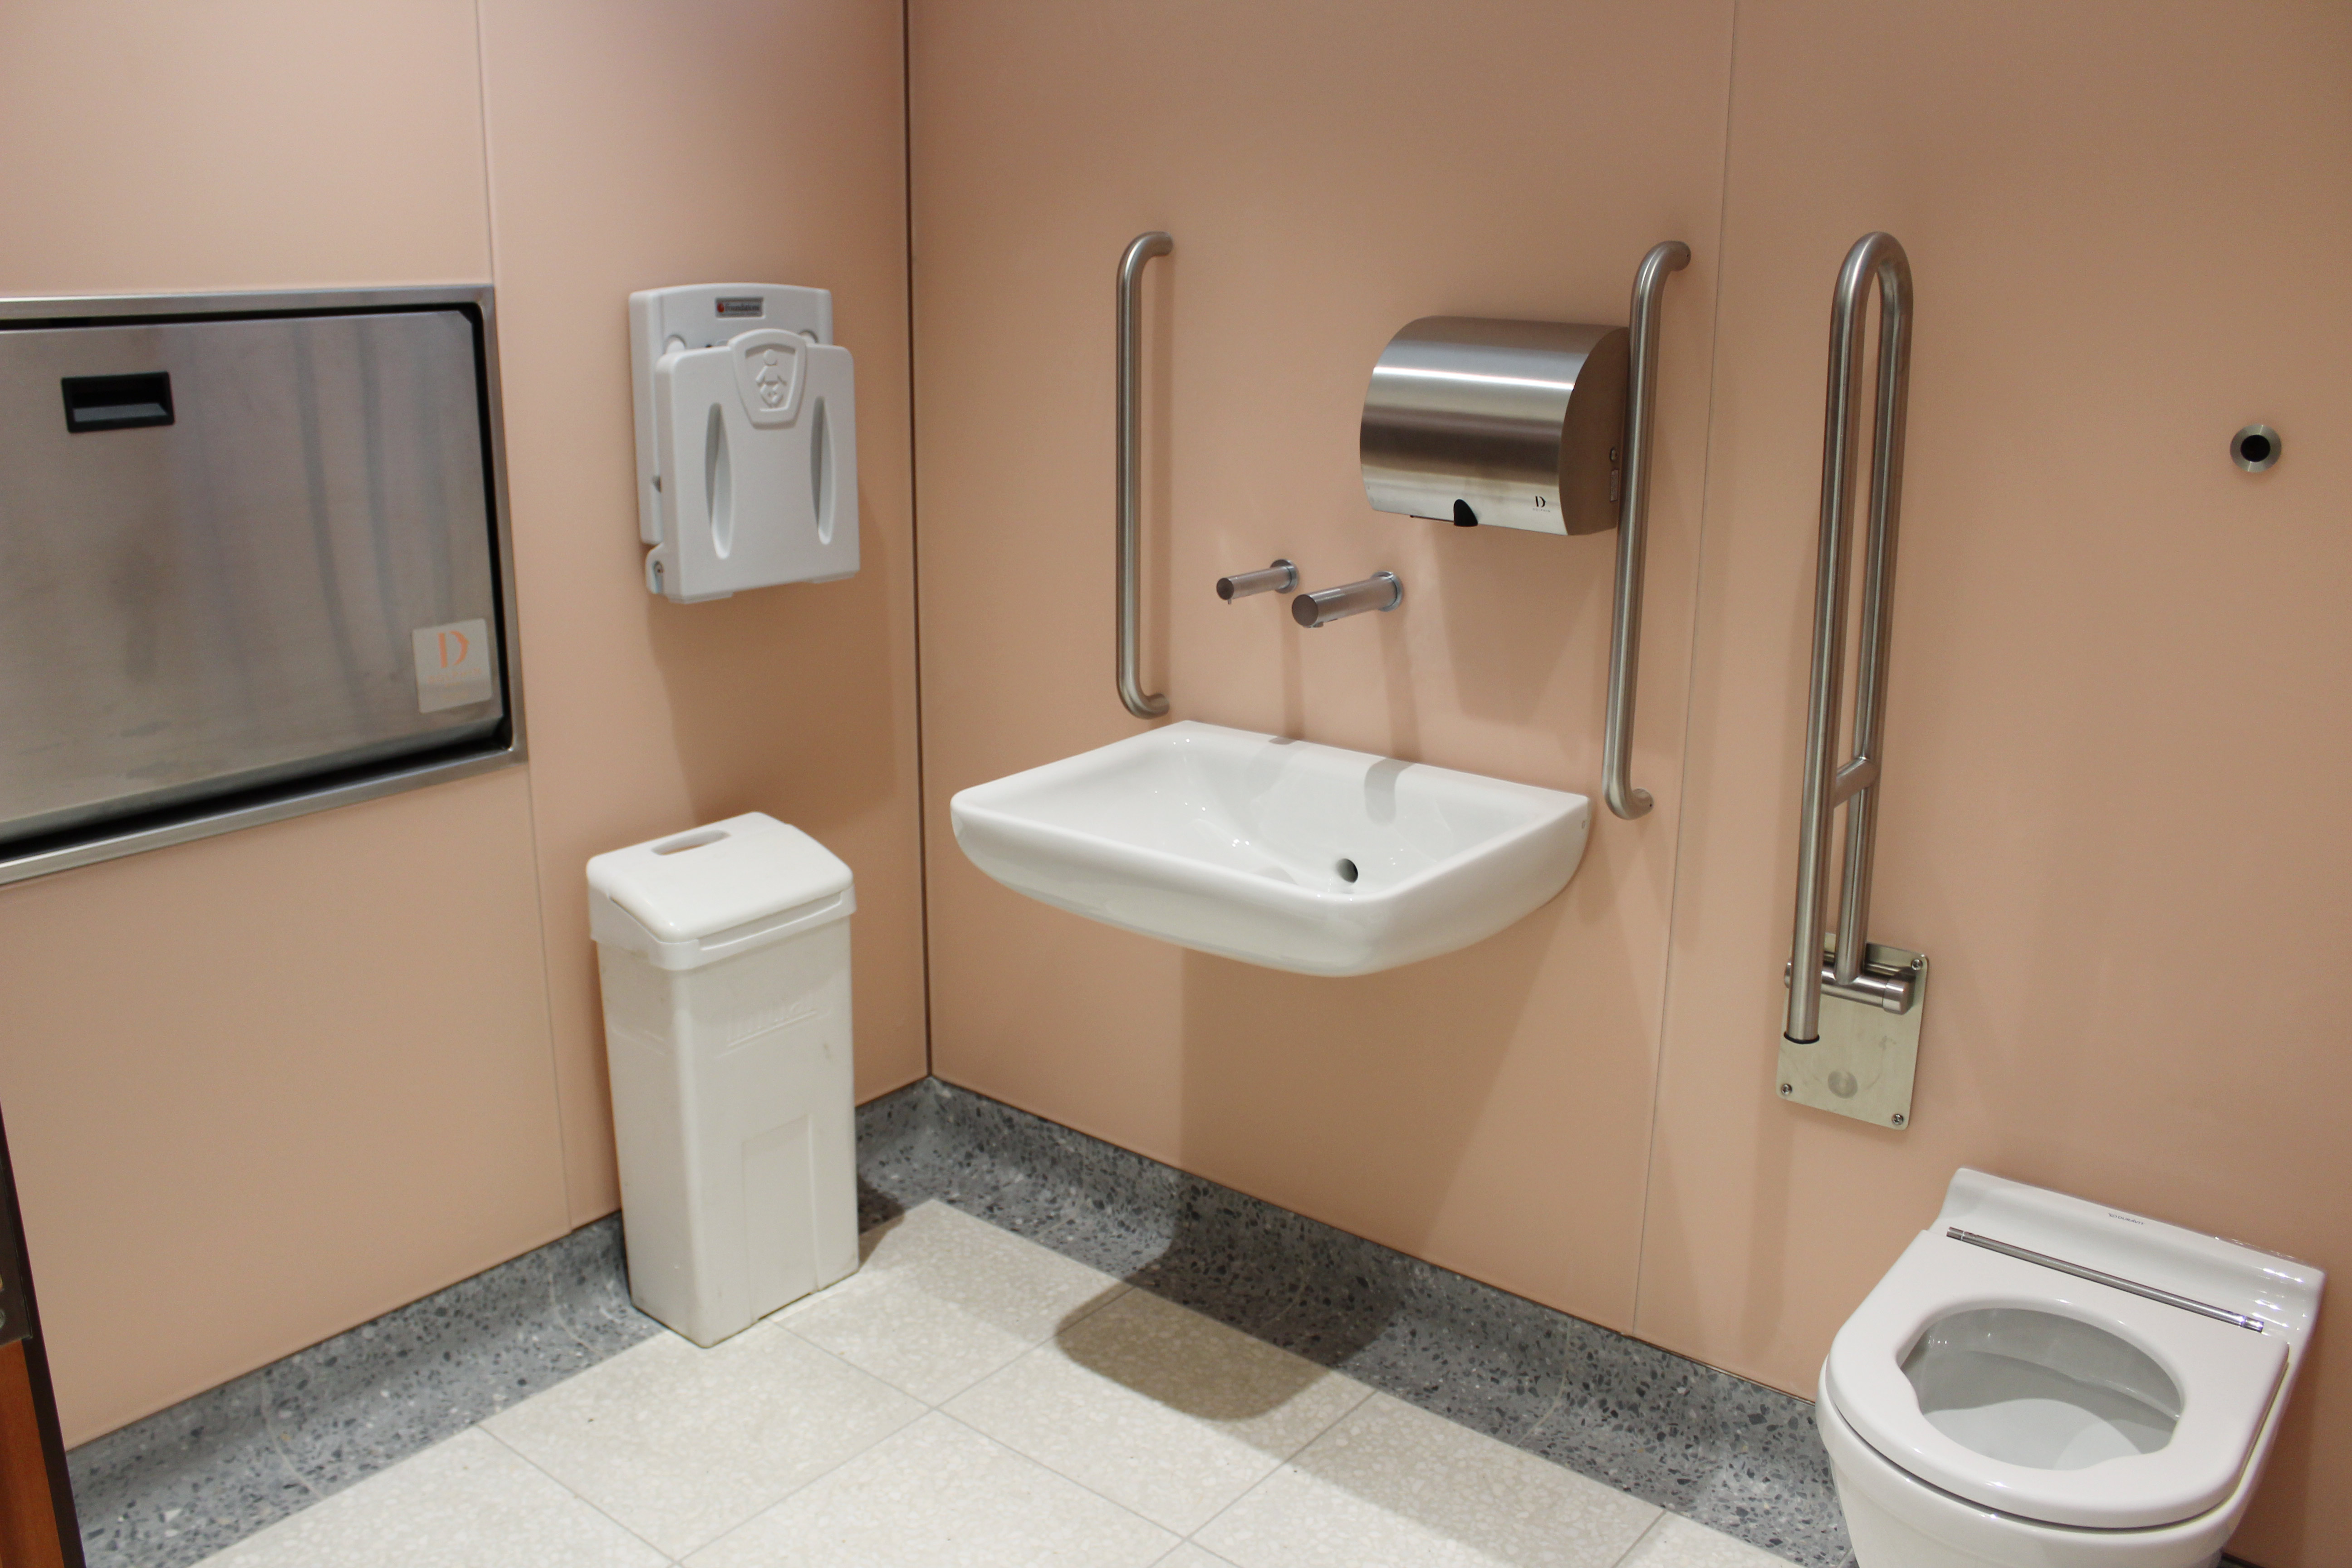 Dolphin Hand Dryer and Commercial Washroom Accessories at Victoria Station